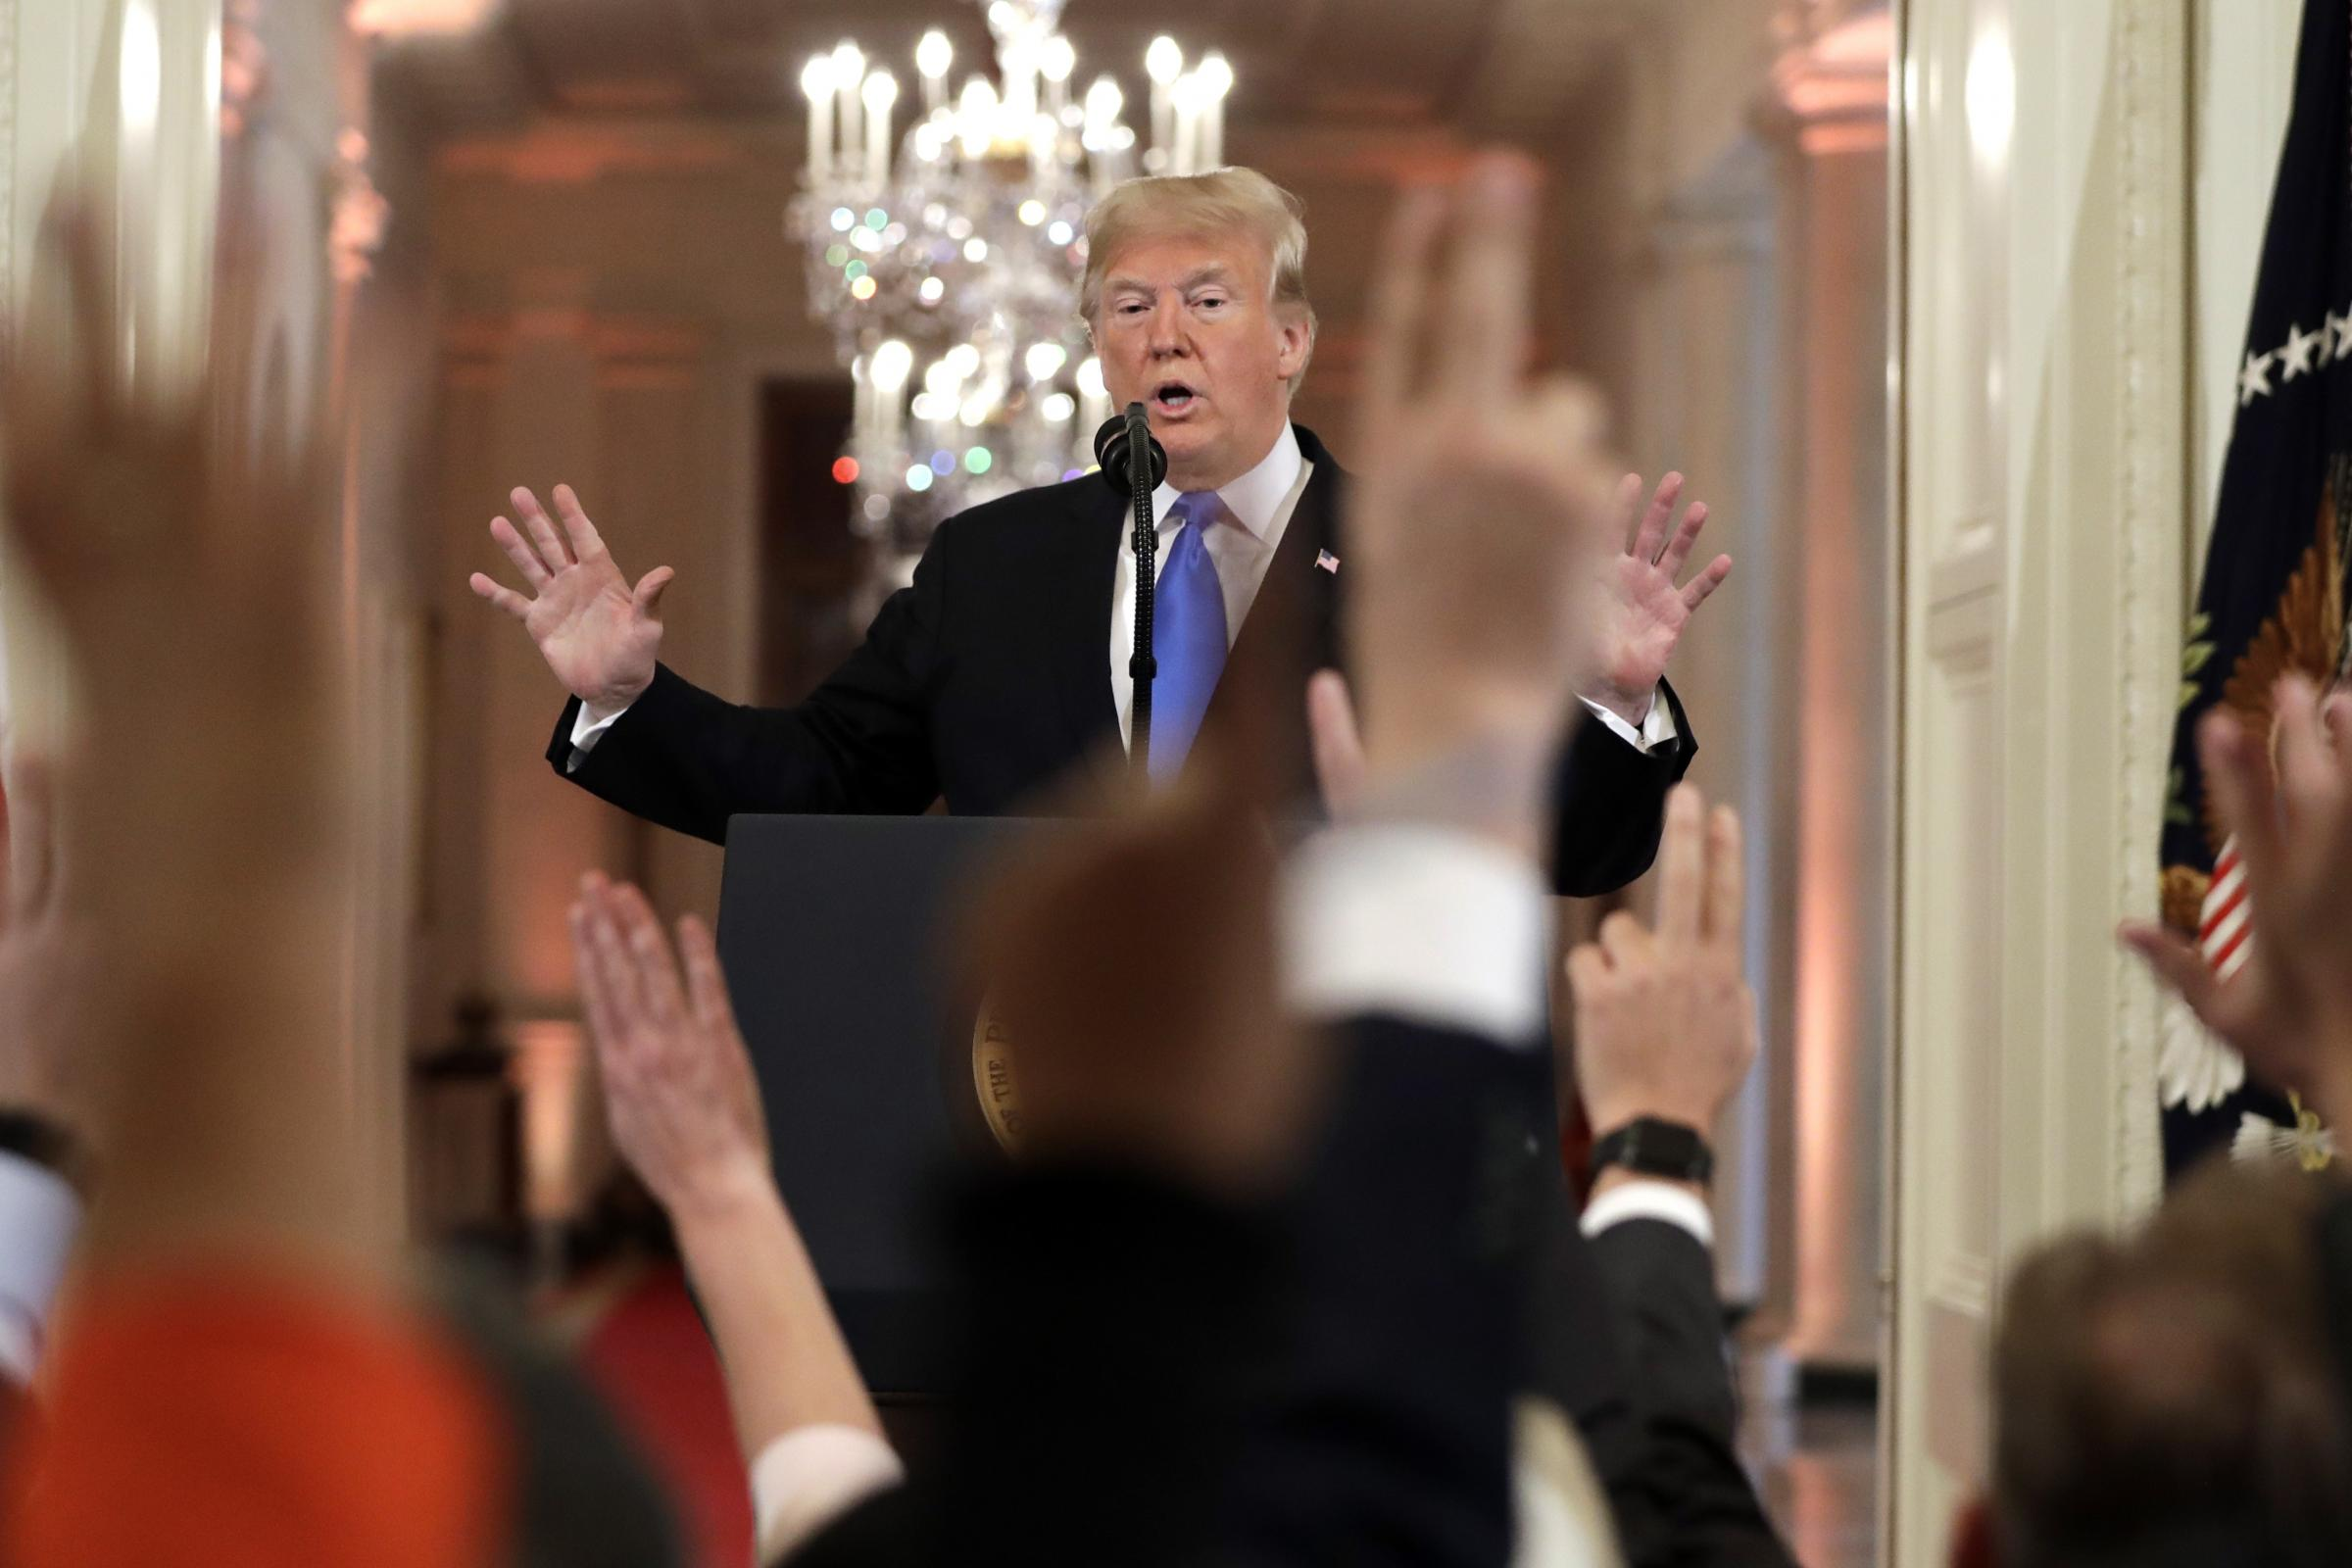 President Donald Trump reacts as reporters raise their hands to ask questions